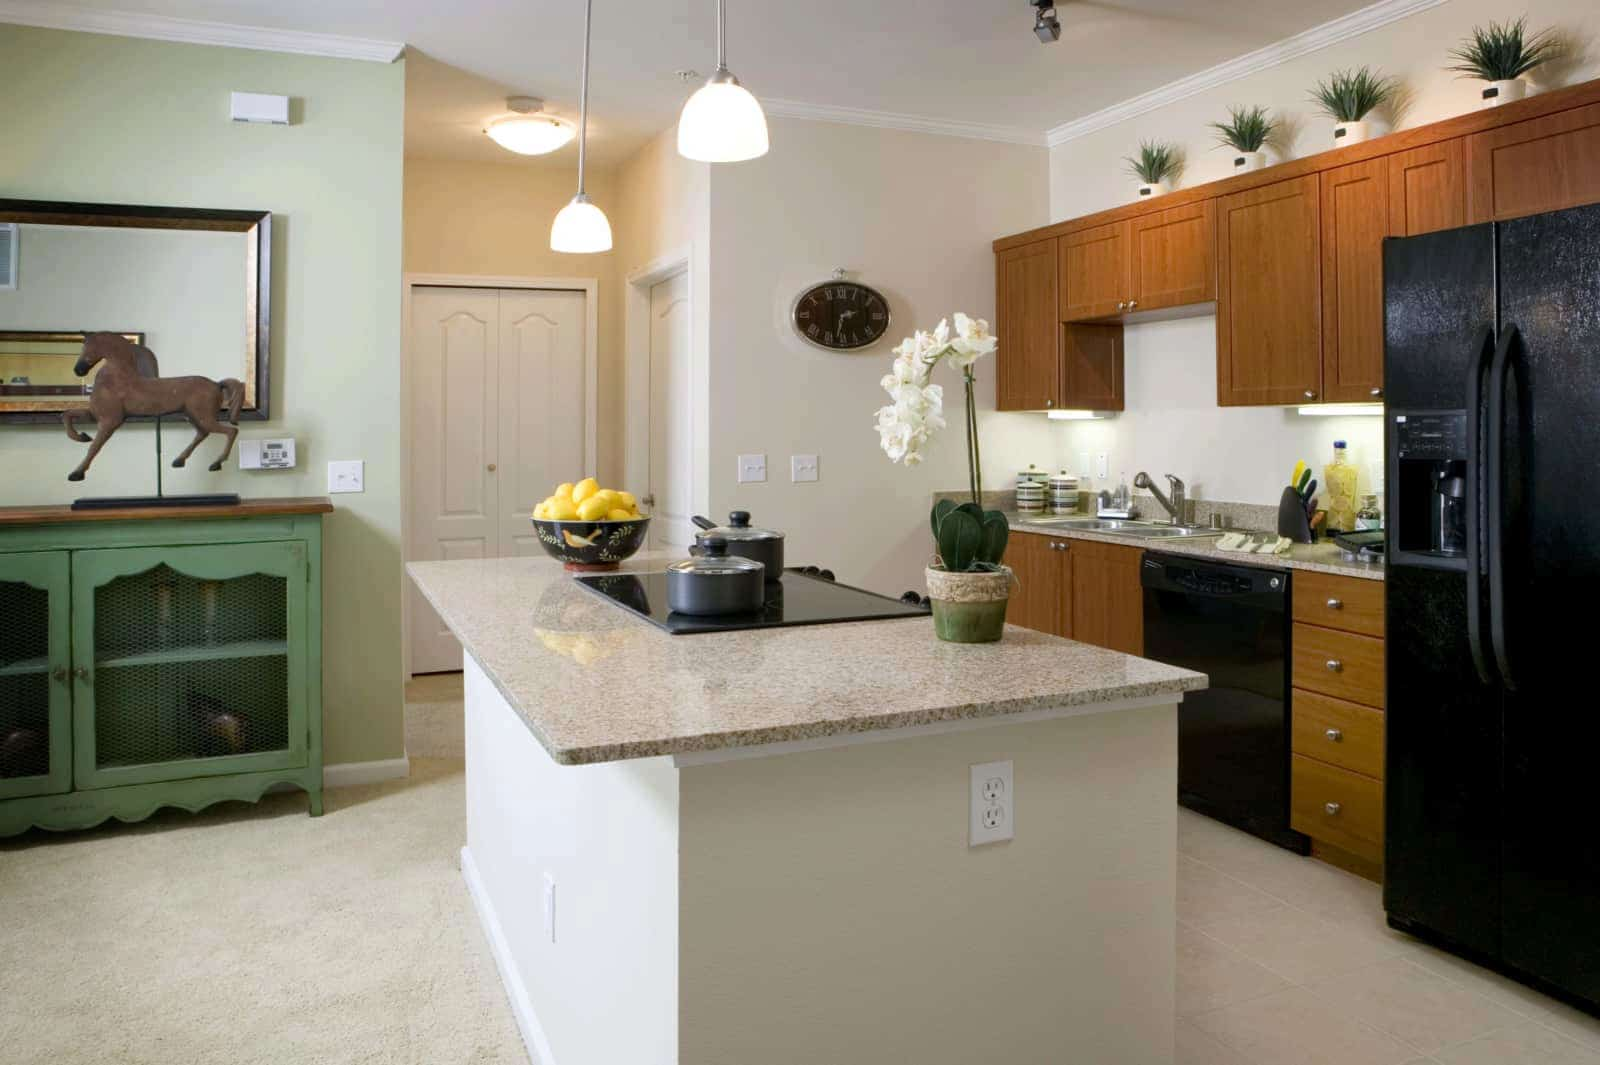 View of the kitchen with black appliances and granite countertop.